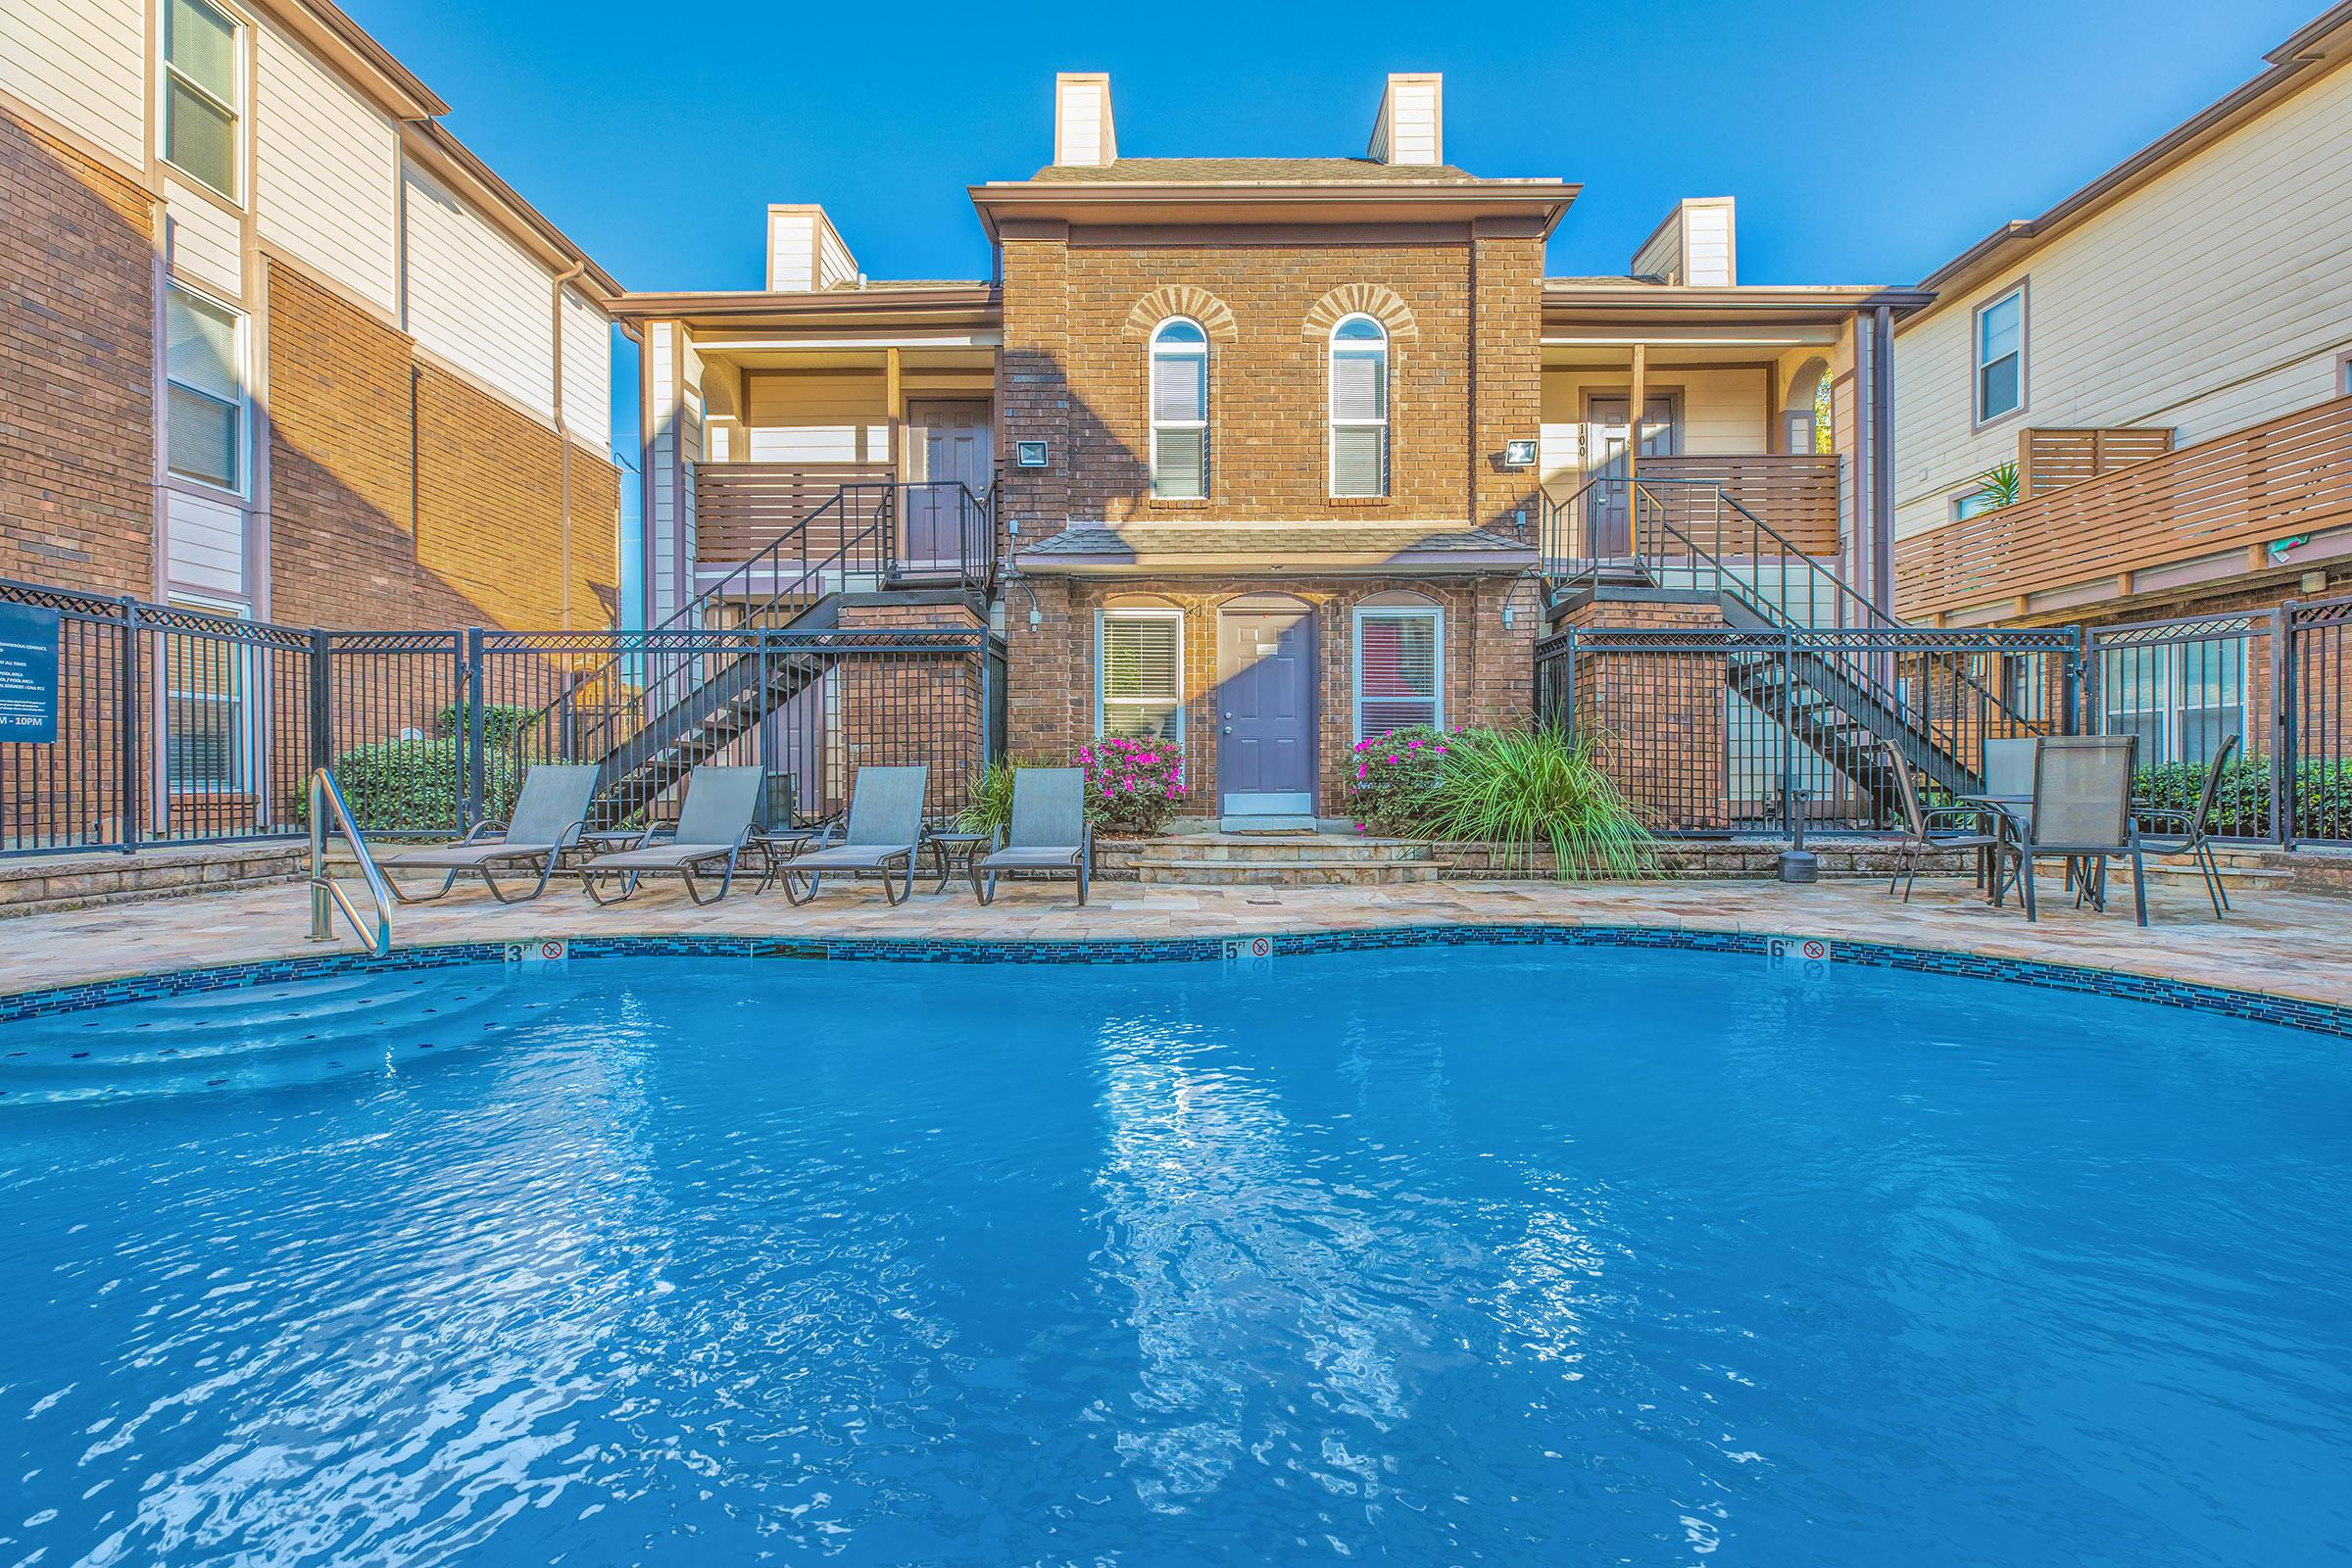 BOUTIQUE SWIMMING POOLS